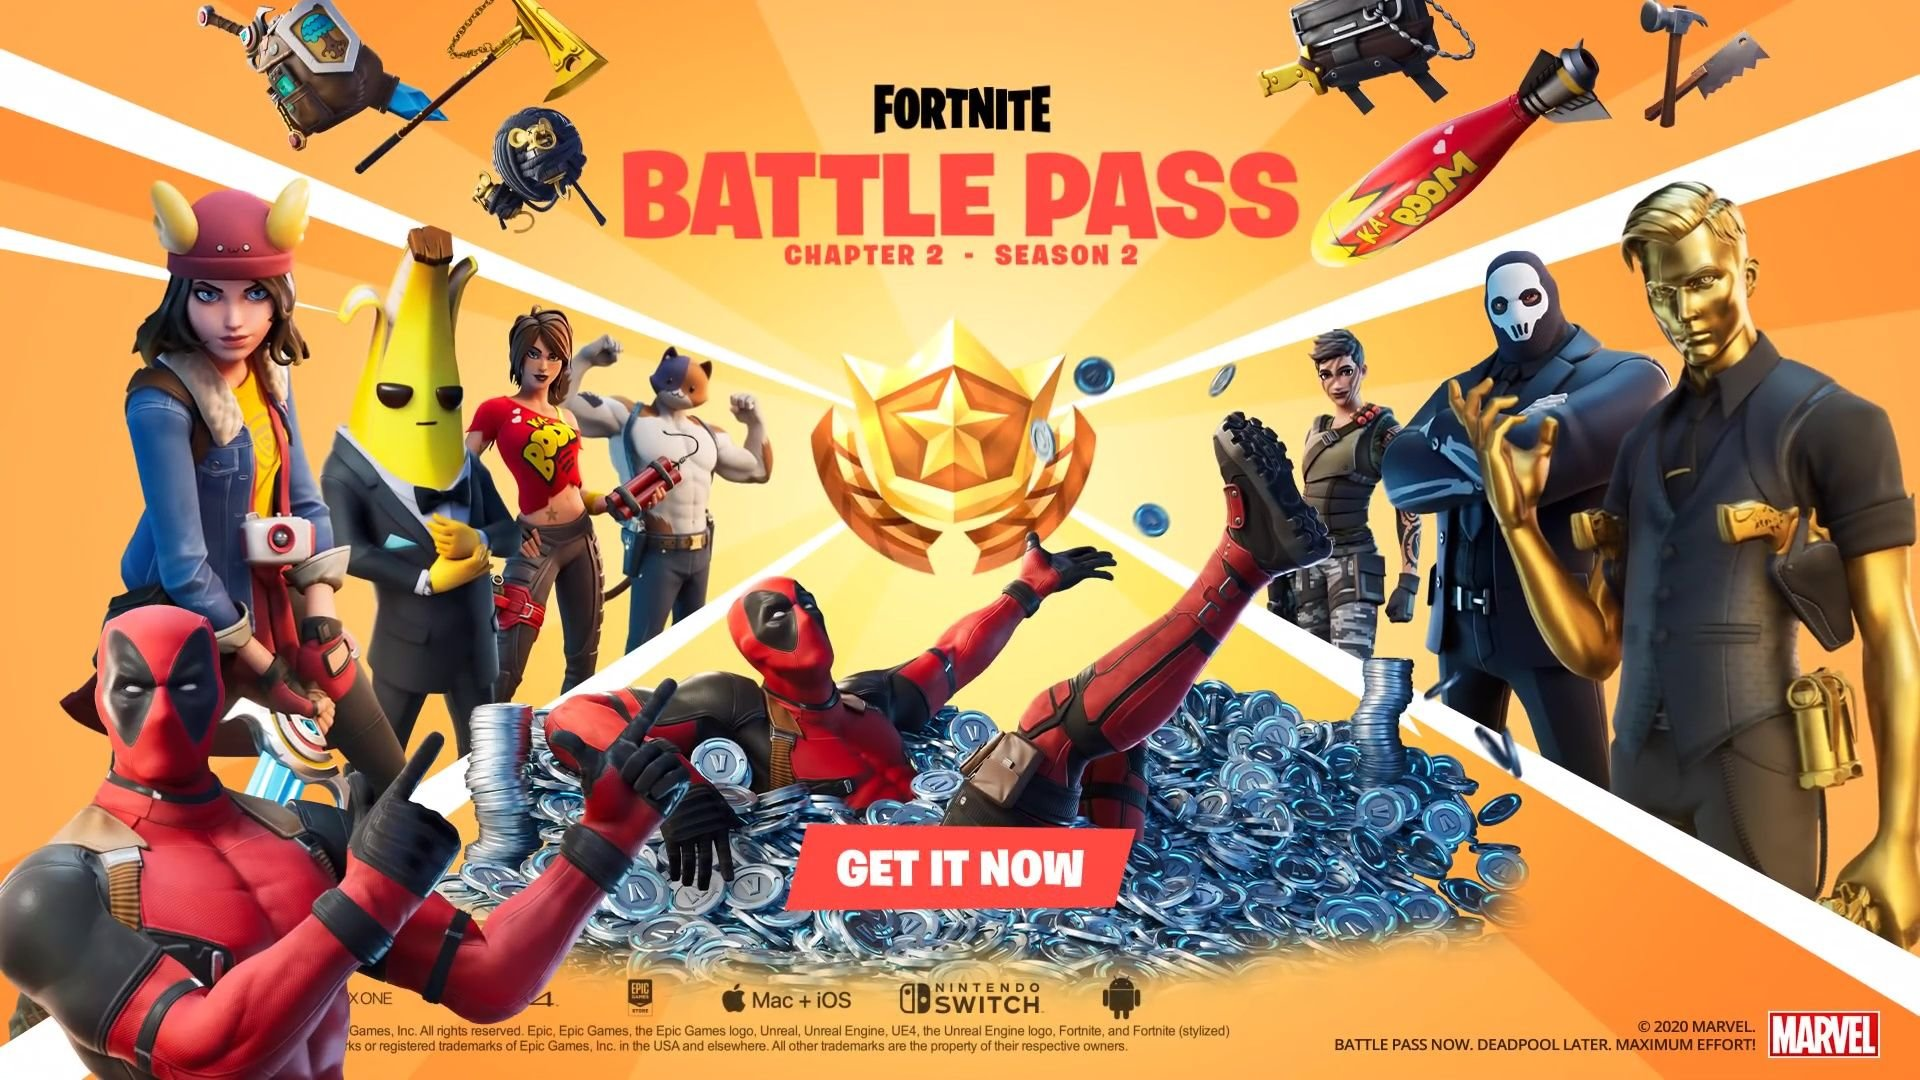 Fortnite Season 2 Game is Now Officially Released